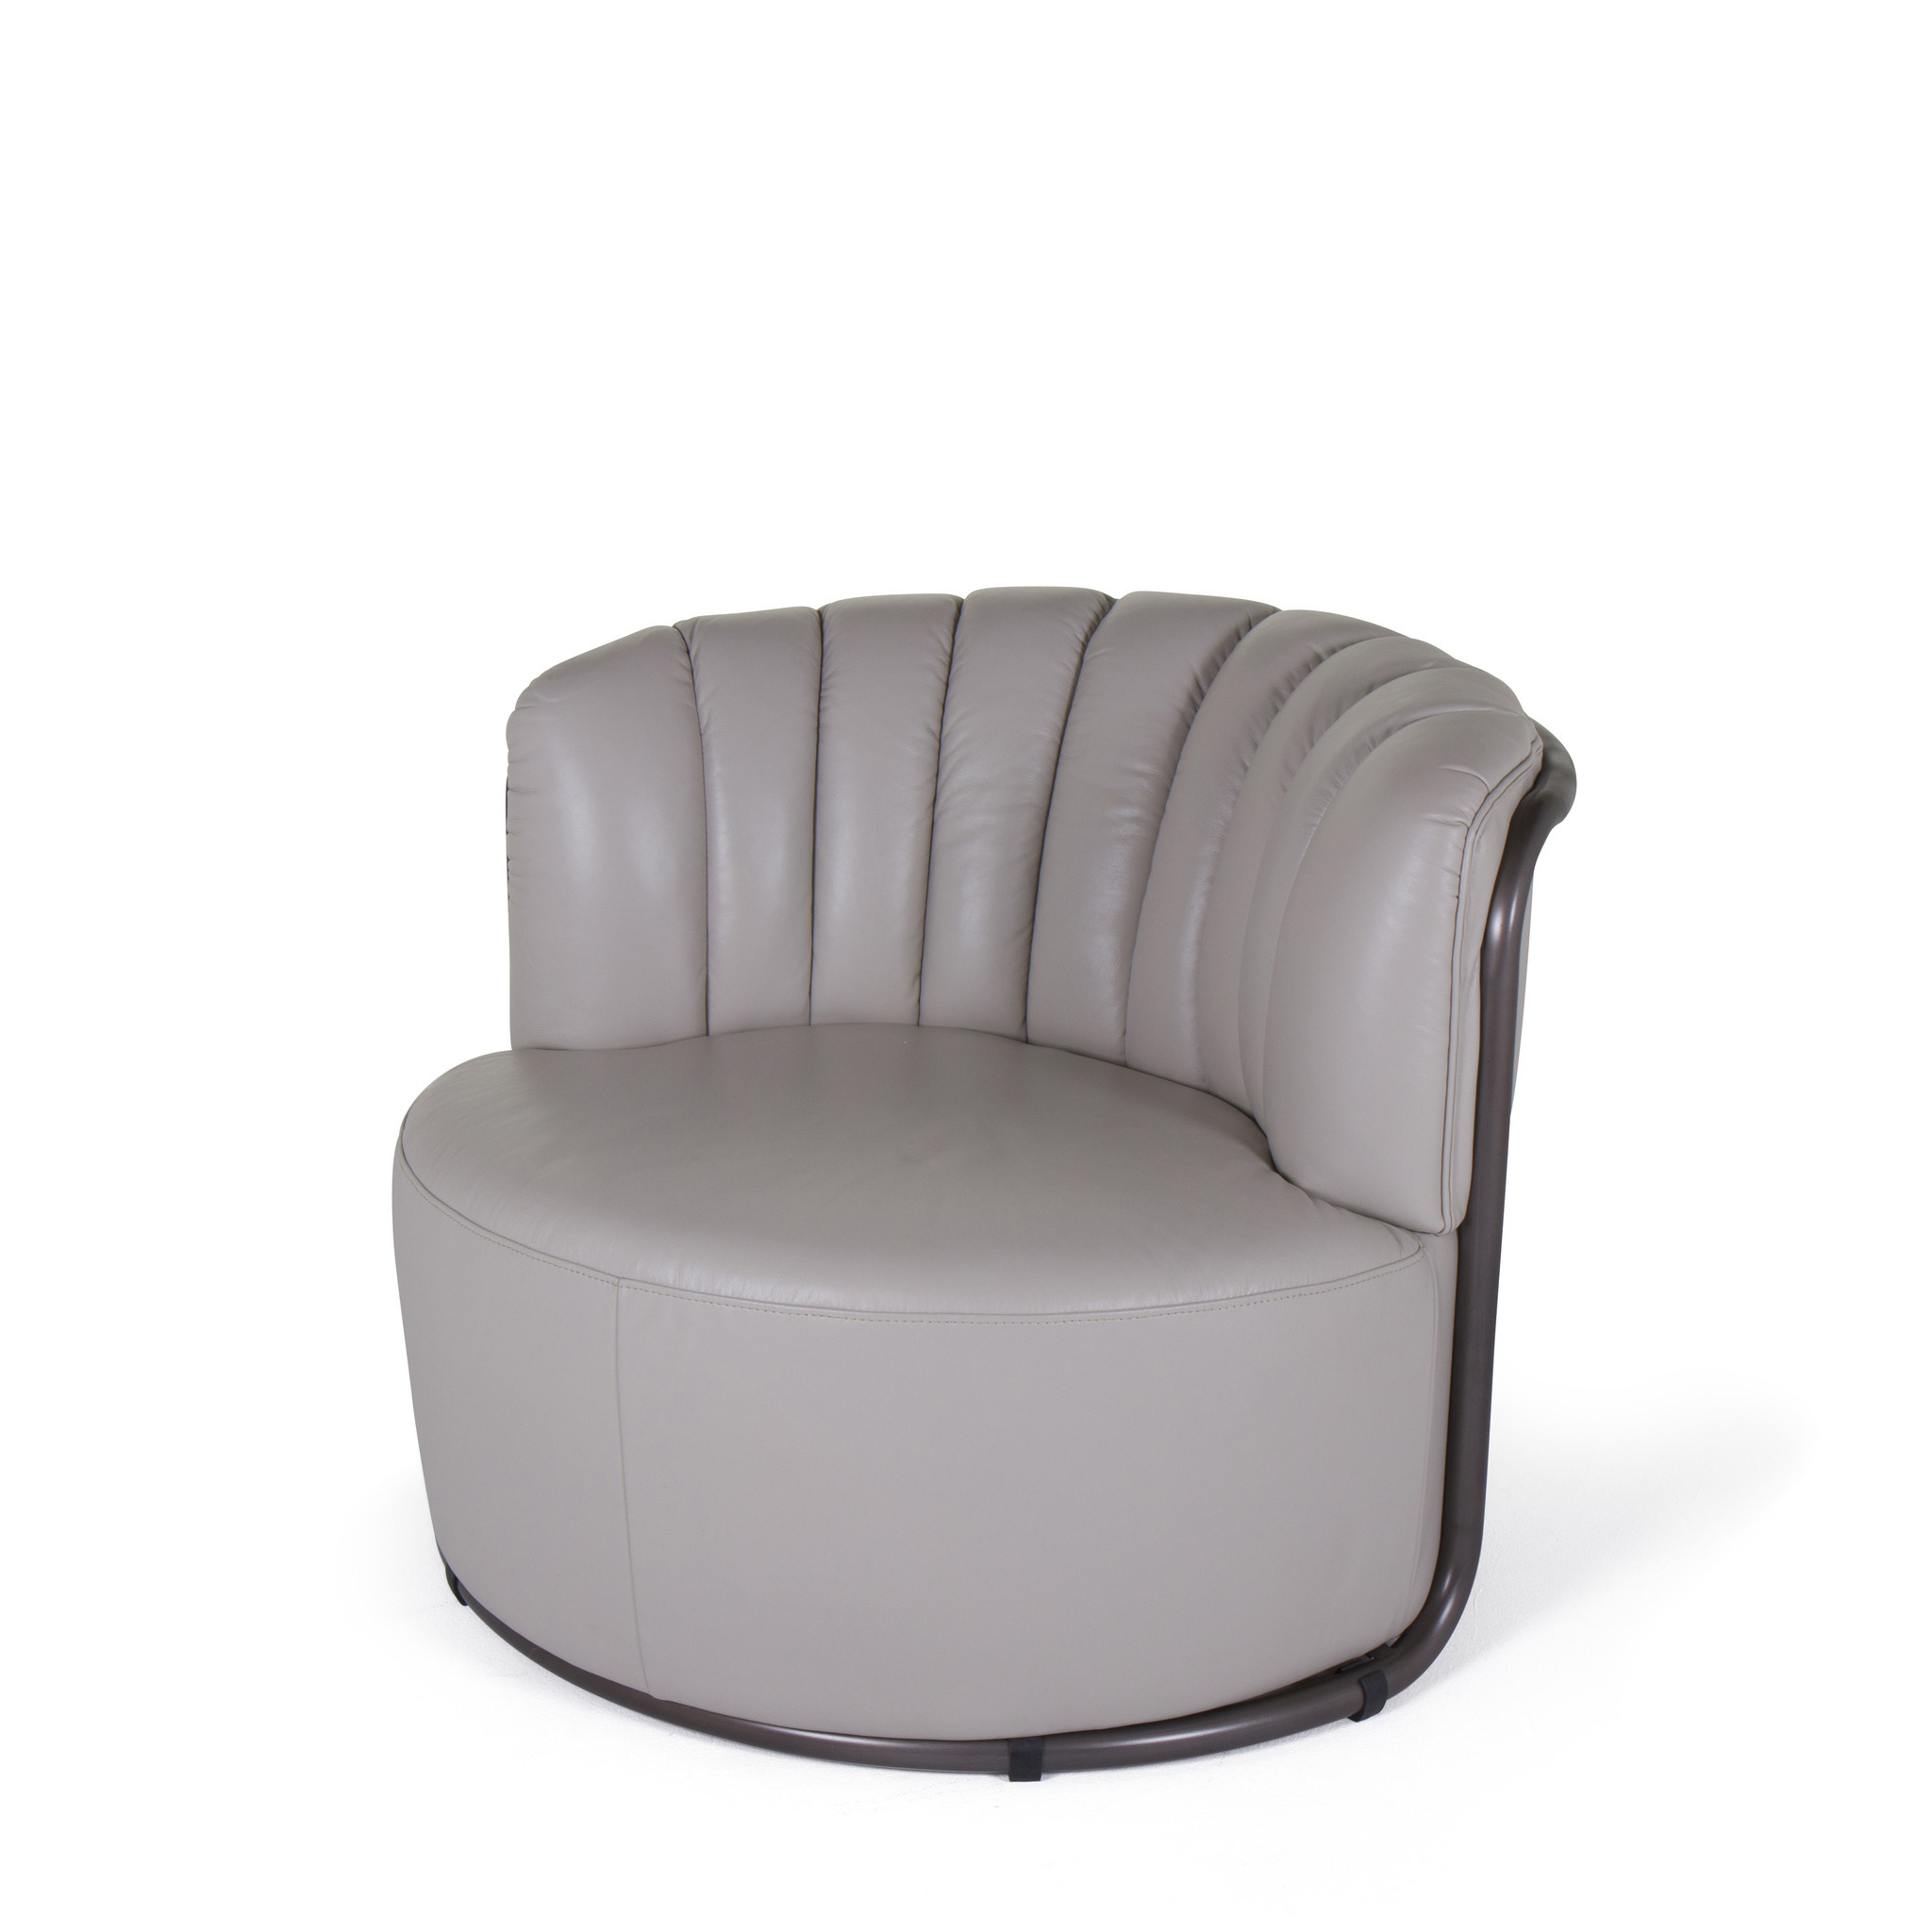 MONTI Arm Chair Cappuccino White Leather-1